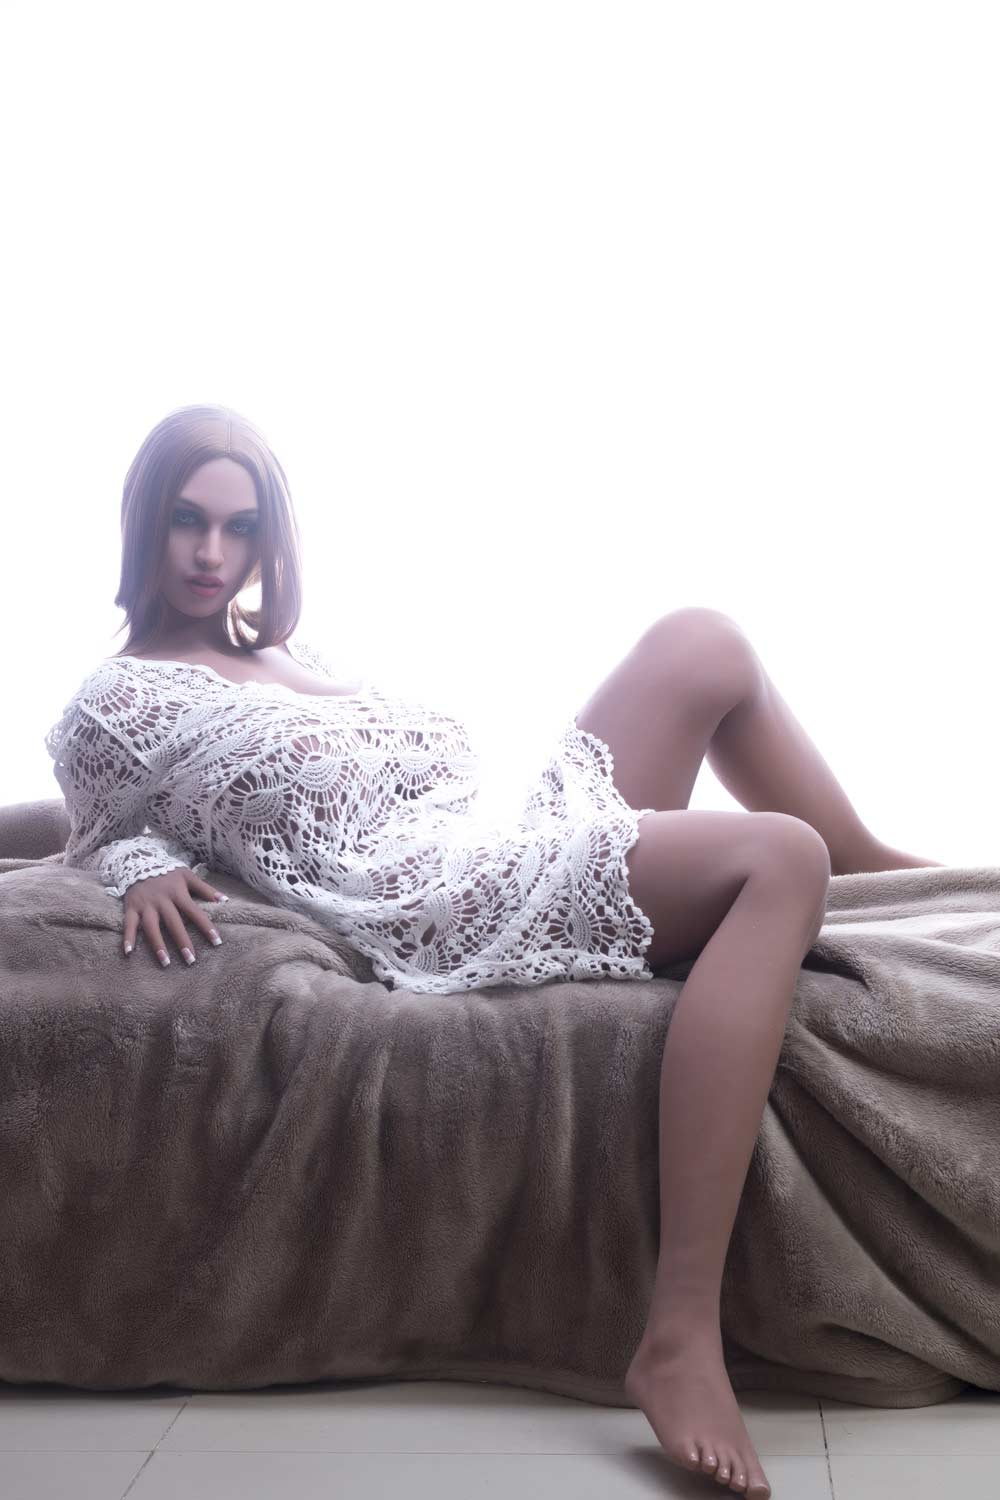 Big breasted sex doll in white mesh clothes